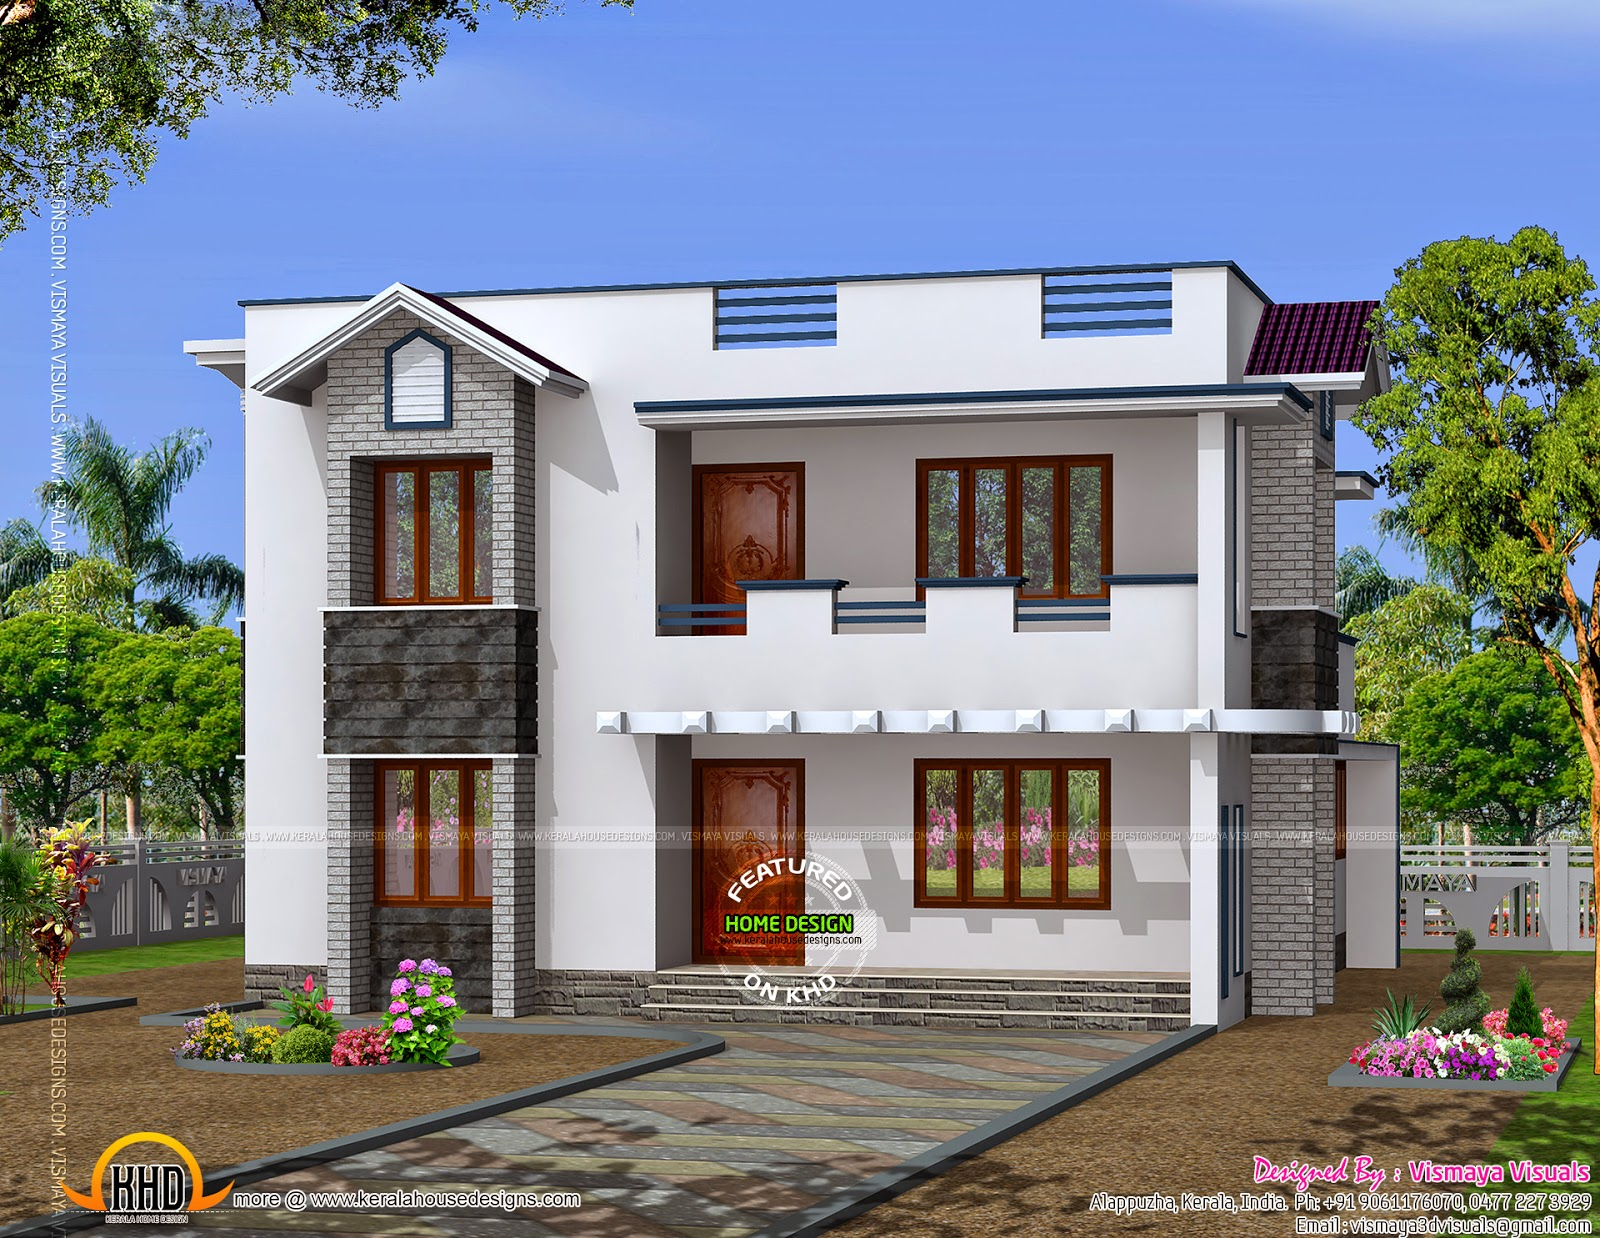 Awesome Simple Design Home Kerala Home Design And Floor Plans Part 25